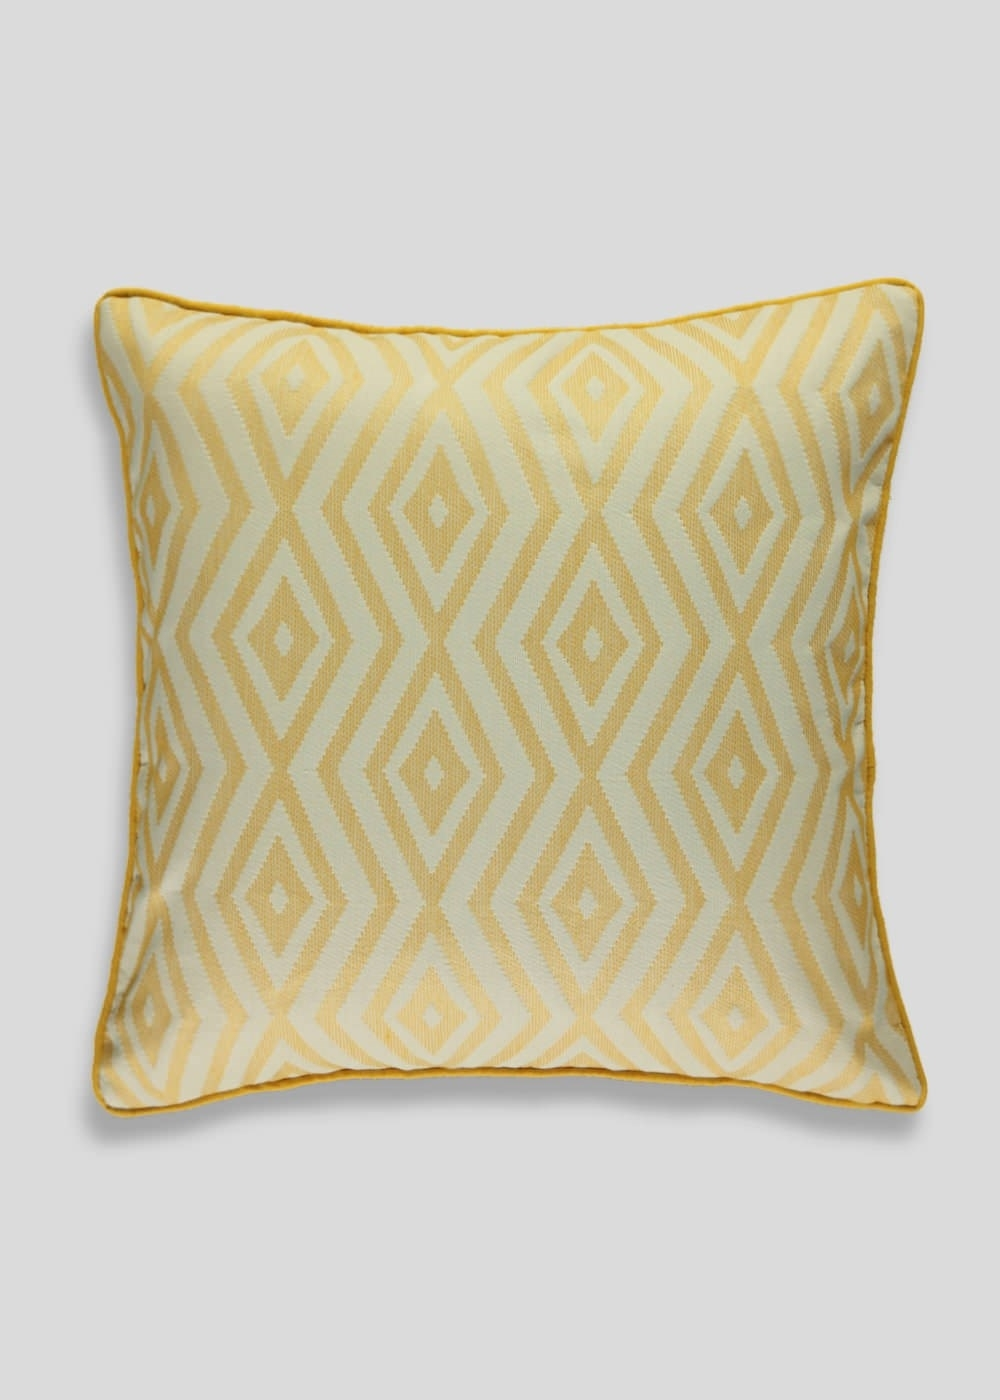 Geo Jacquard Cushion (45cm X 45cm) – Matalan | Home Accessories Within Most Current Matalan Canvas Wall Art (View 8 of 15)